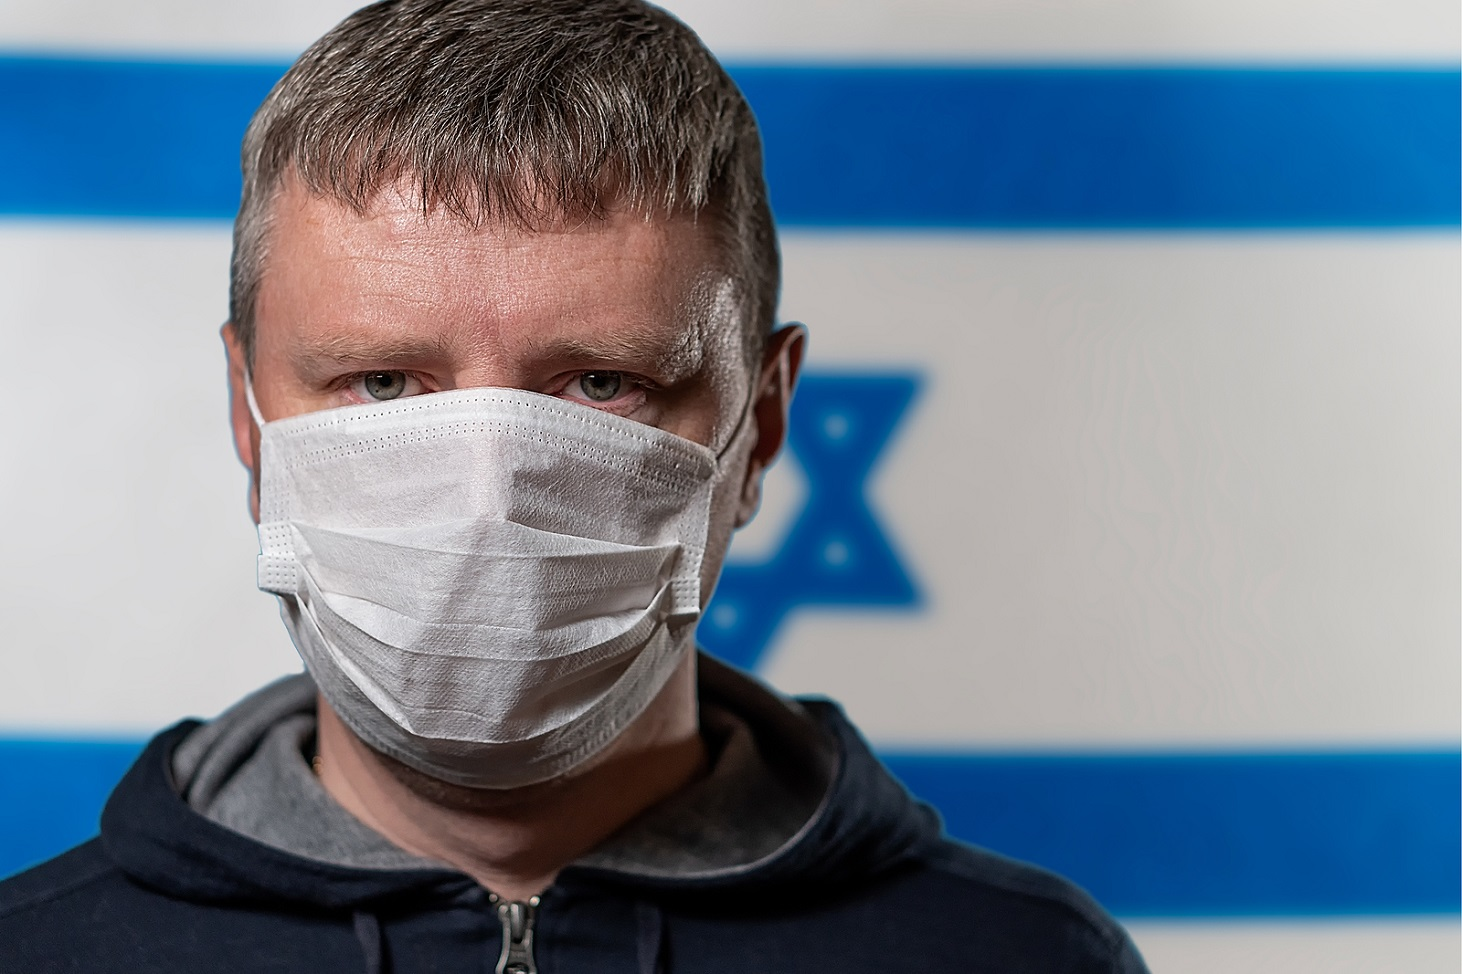 Portrait Of A White Man In A Medical Mask On The Background Of T